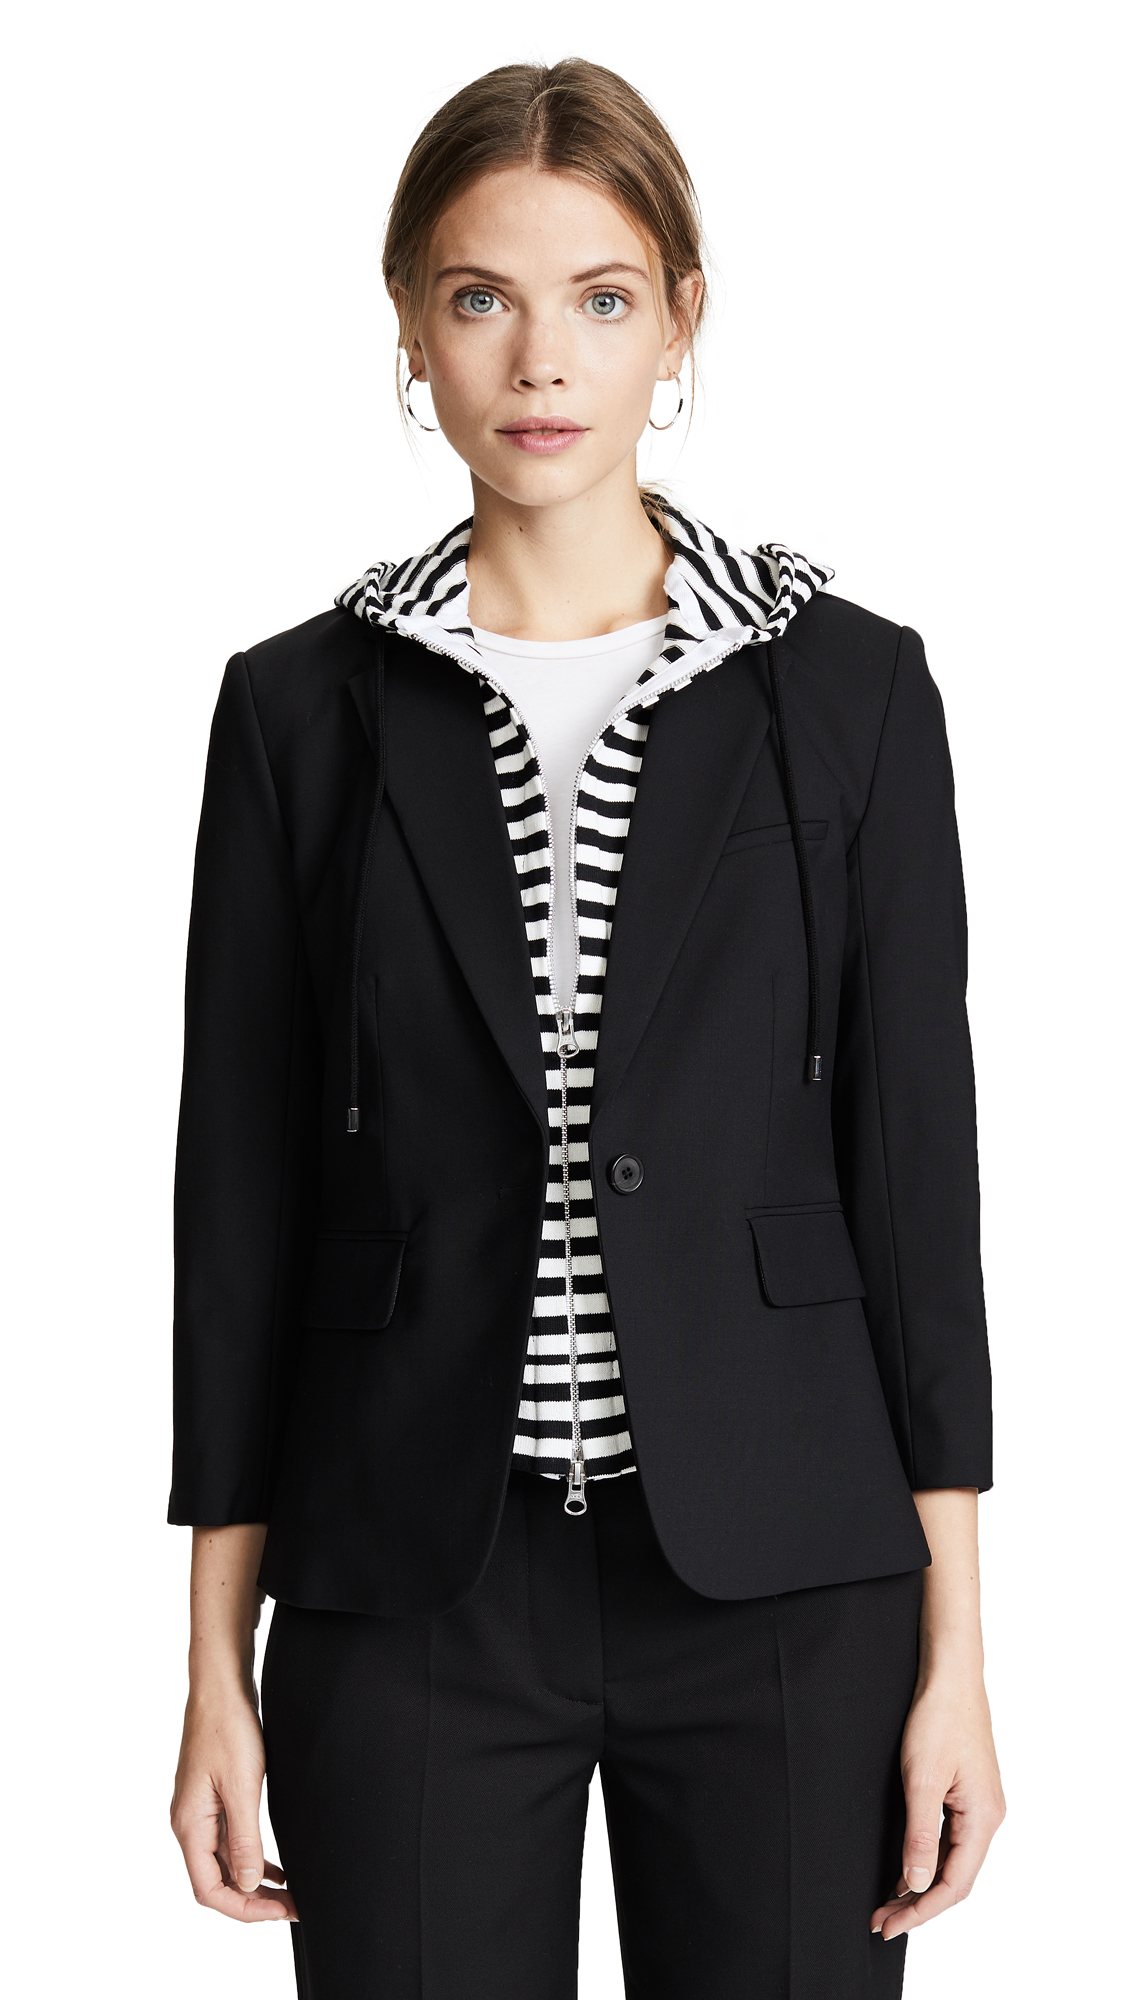 Veronica Beard Schoolboy Jacket with Striped Dickey In Black